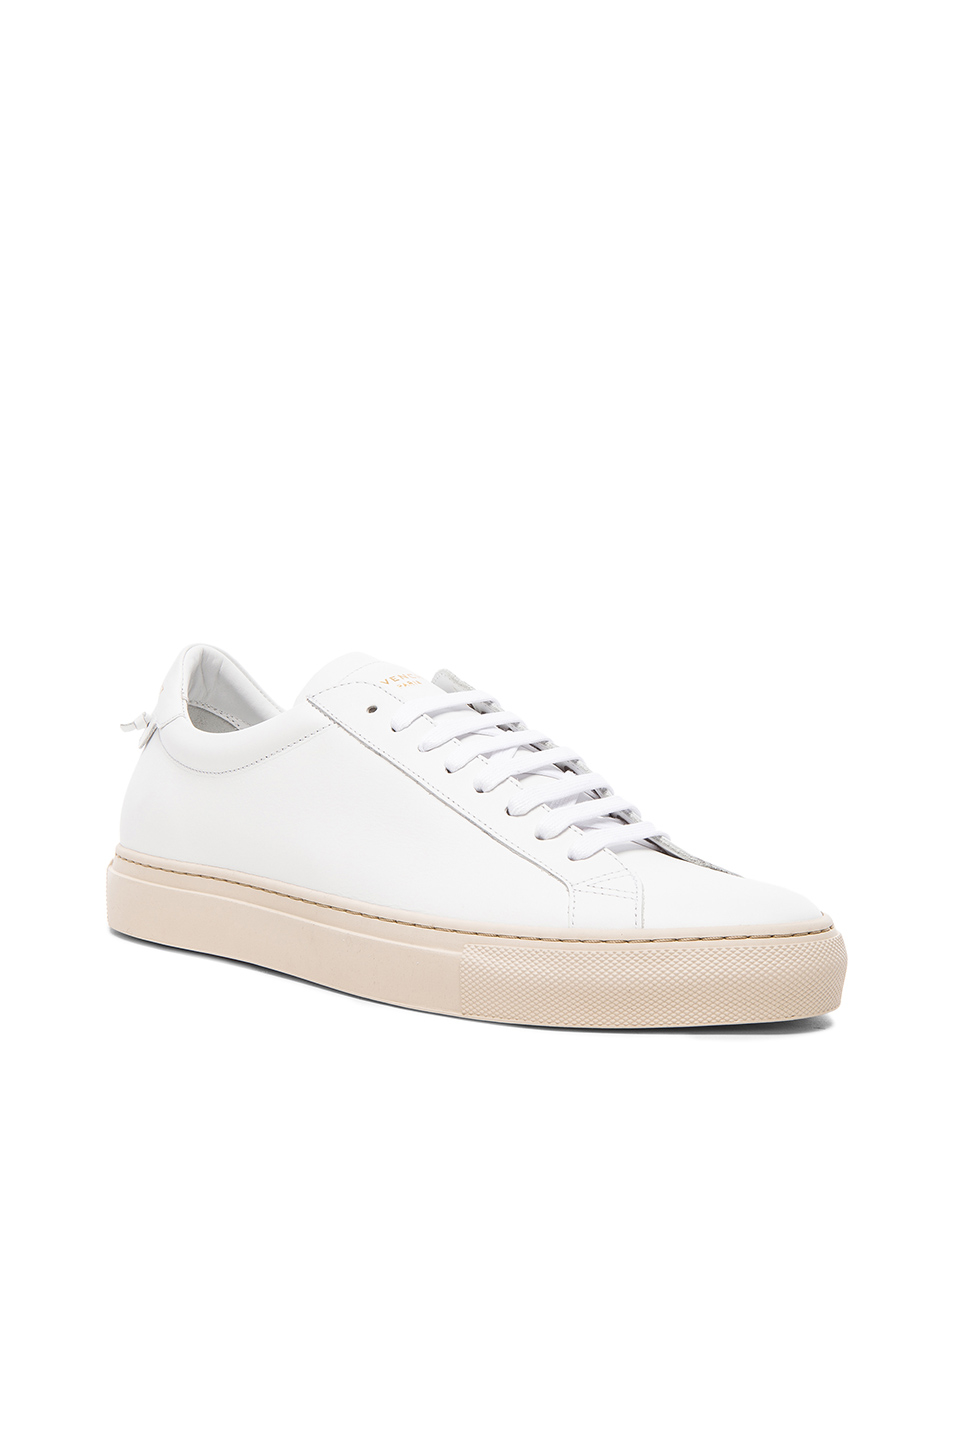 low-top sneakers - White Givenchy XtY8c0JeD